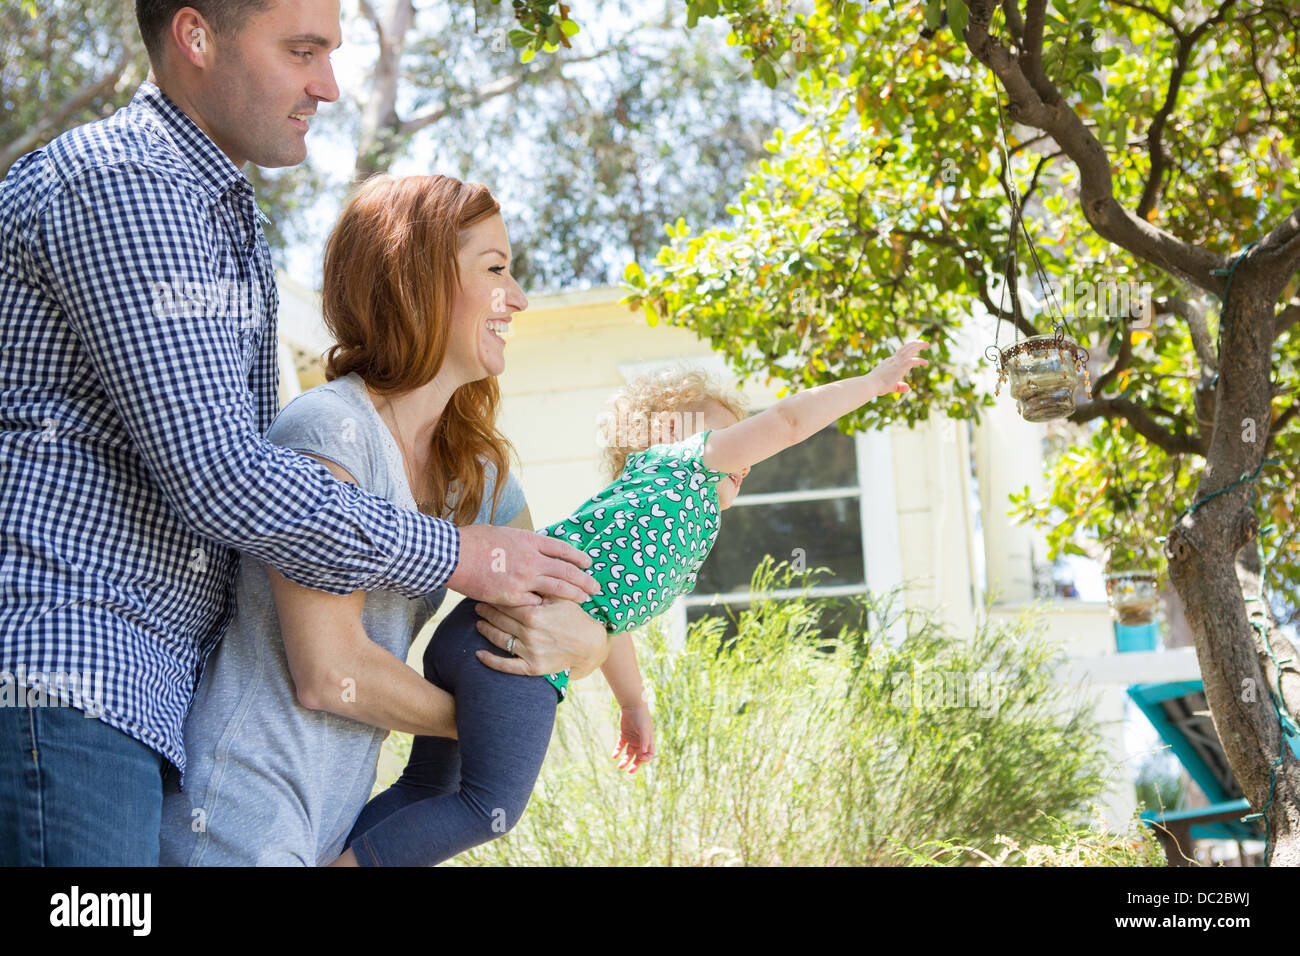 Couple carrying child reaching out - Stock Image